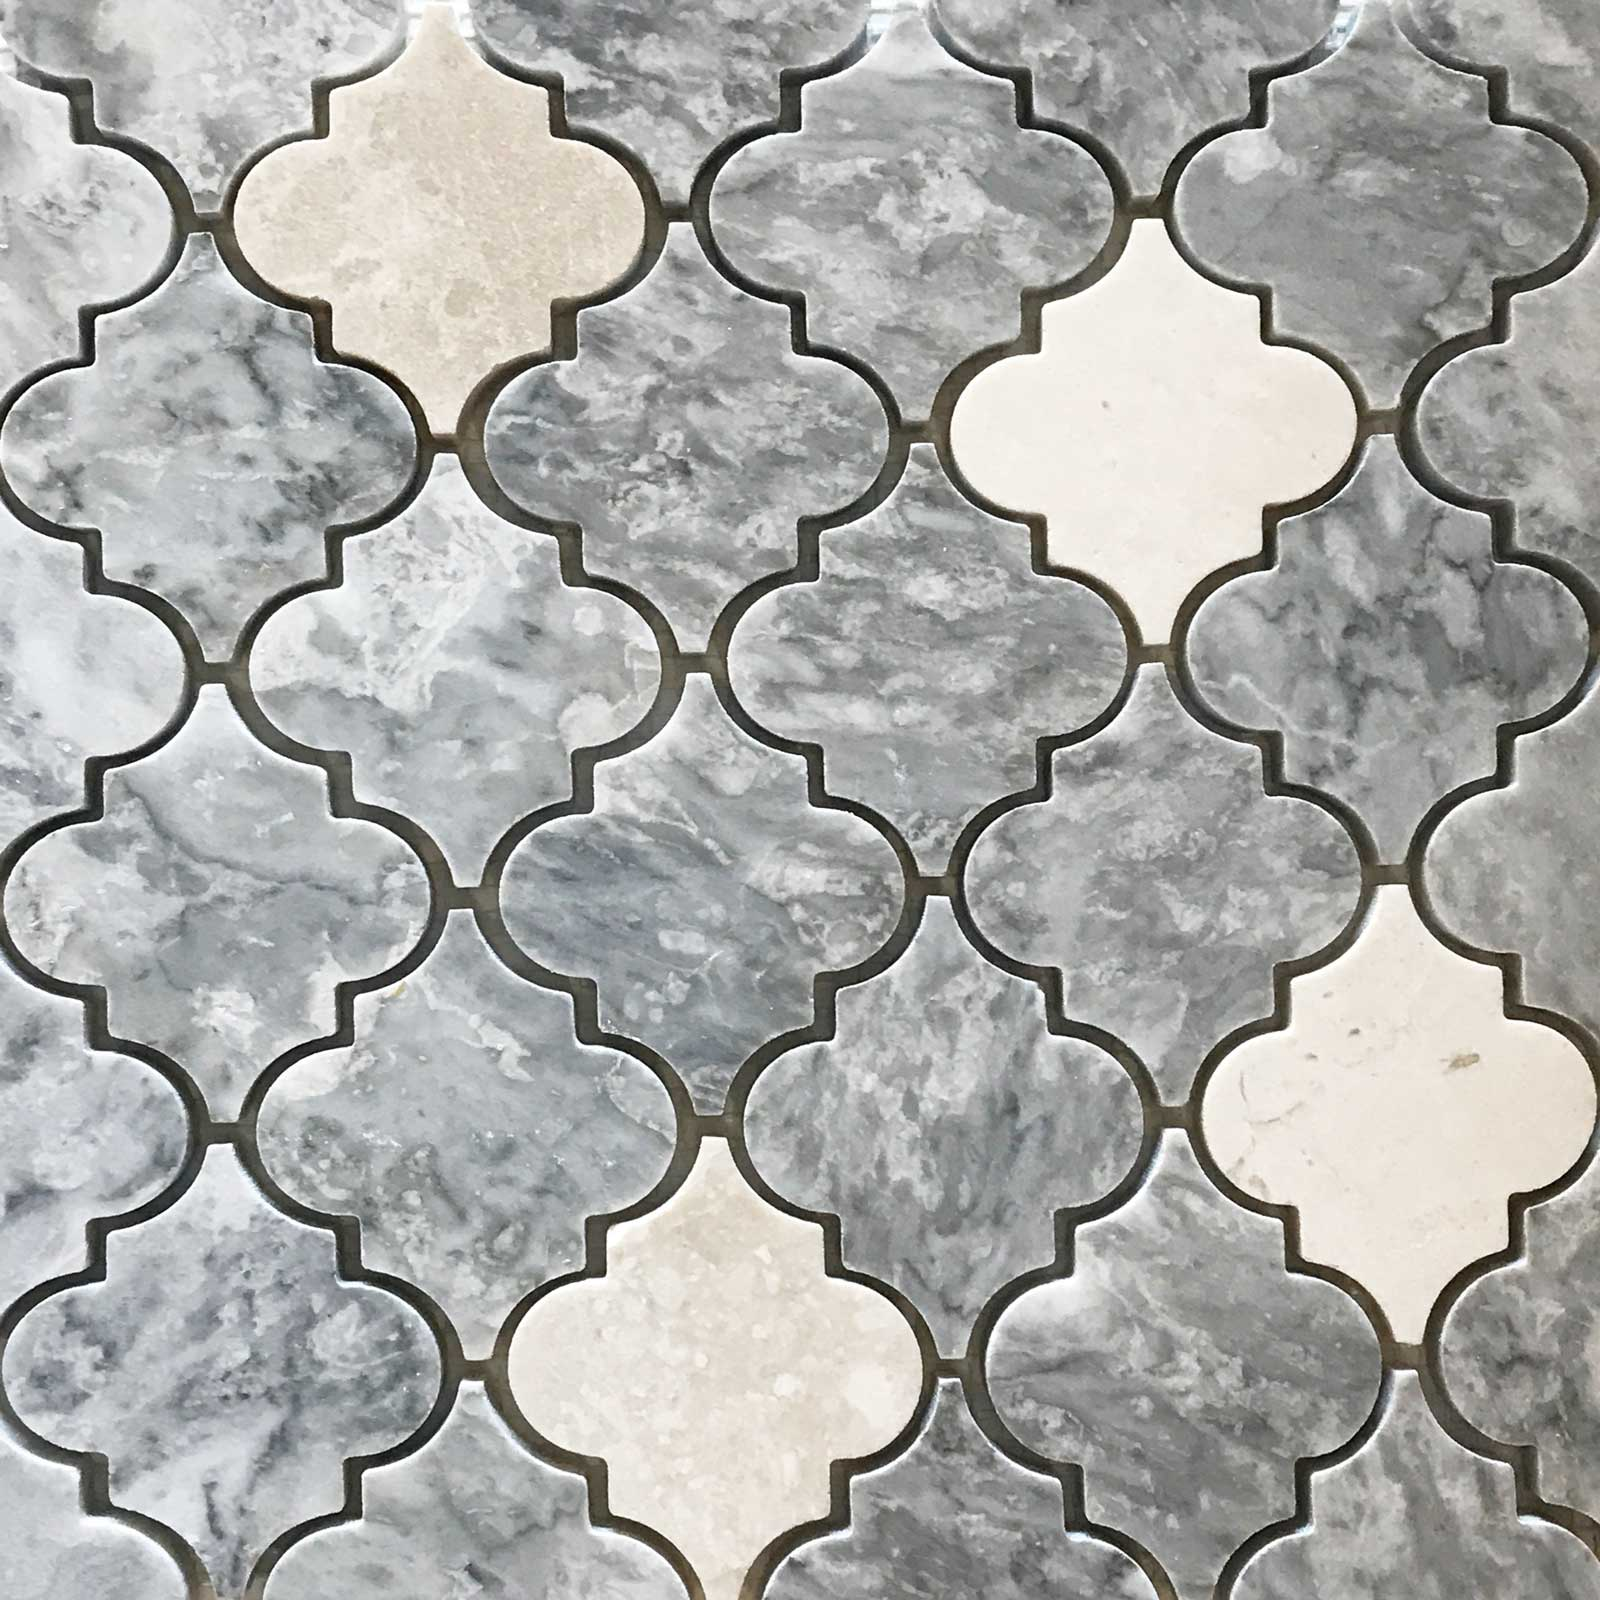 Arabesque Marble Tile Lantern Arabesque Mosaic Tile Light Grey Botticino Marble